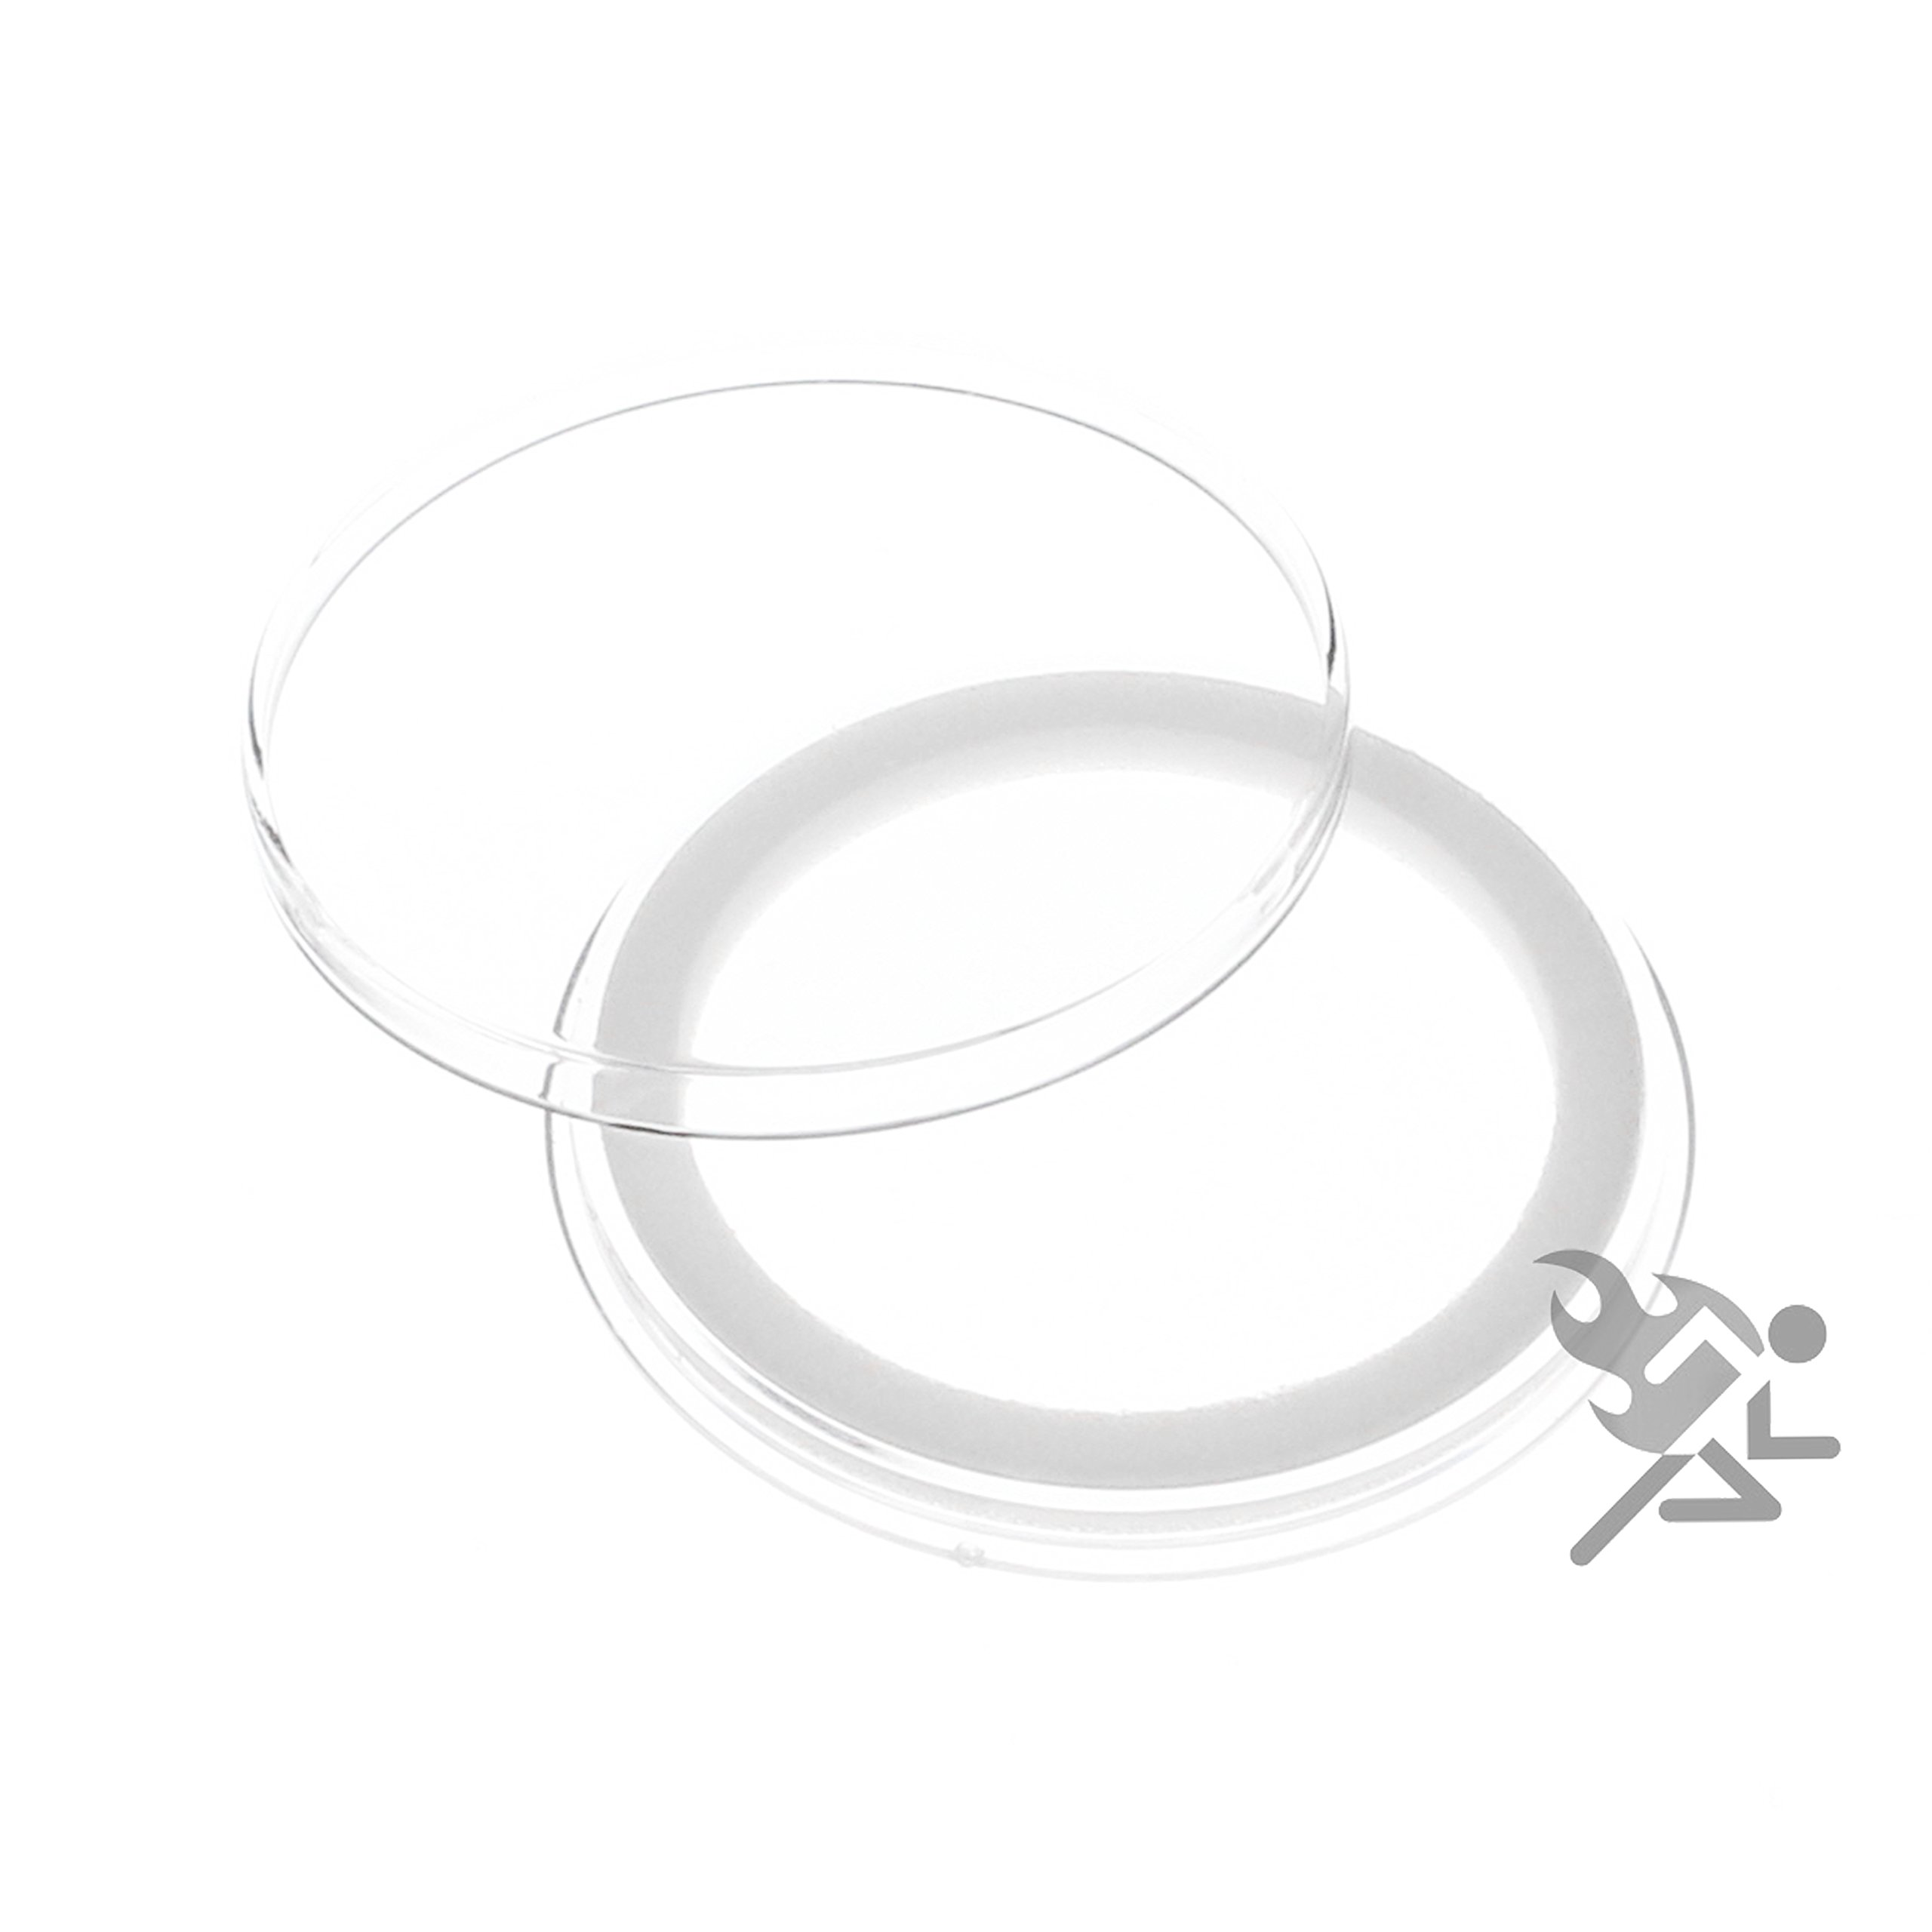 25 Genuine Air-tite 39mm with White Rings for 1oz Silver and copper rounds.